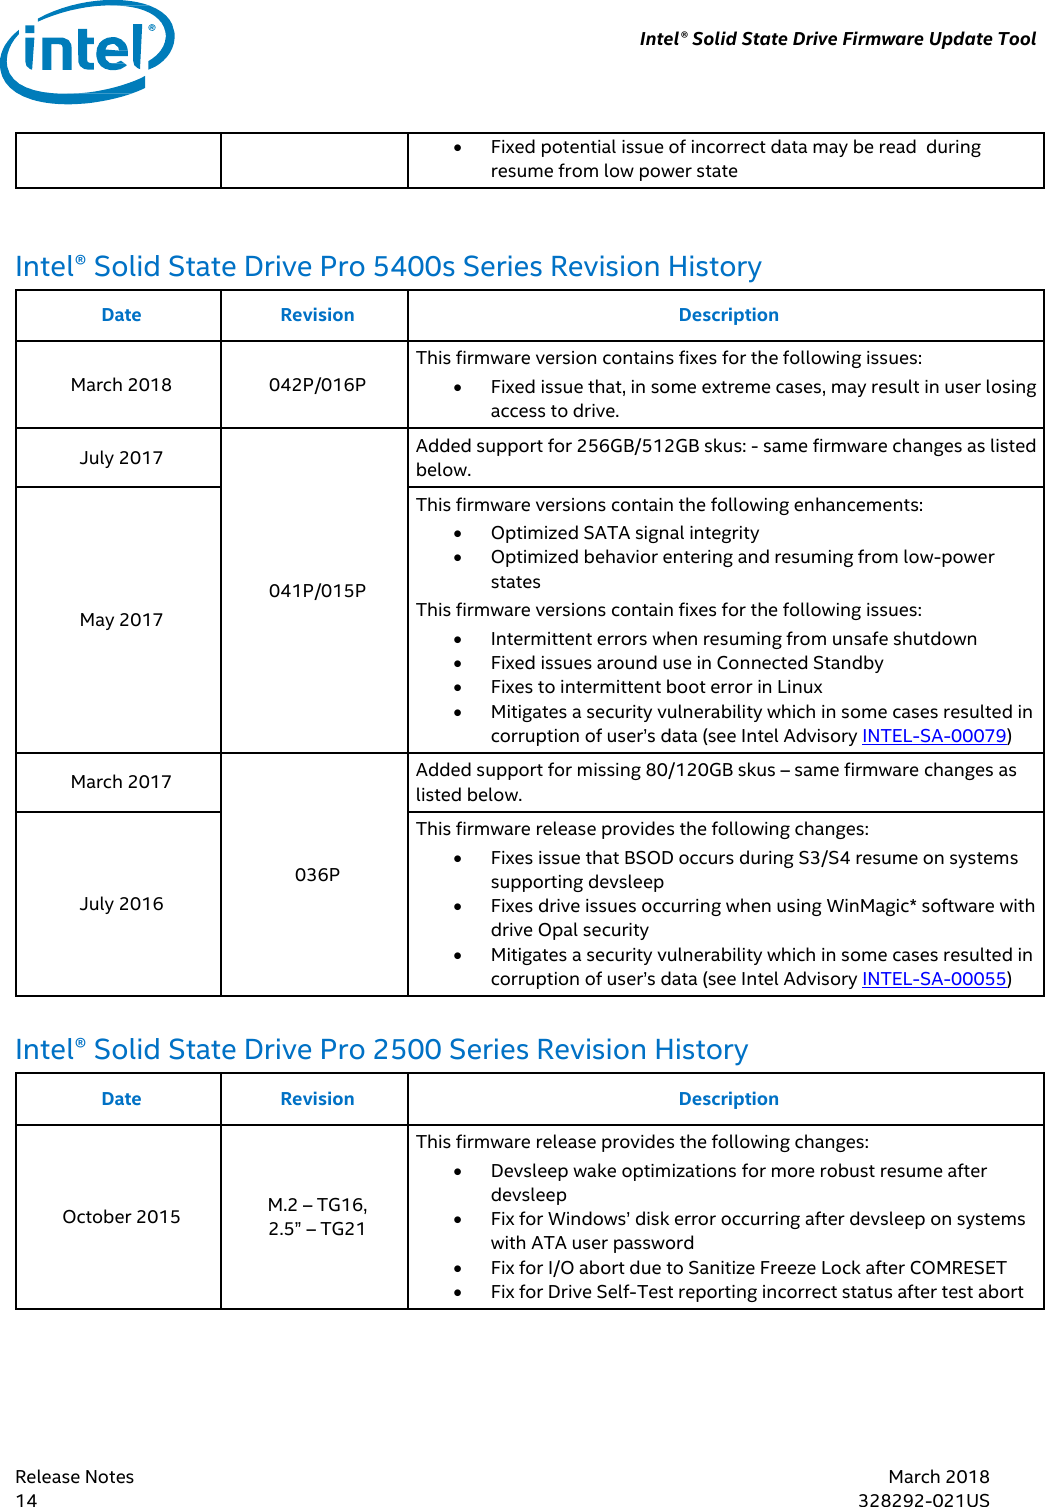 Intel® Solid State Drive Firmware Update Tool Release Notes Intel